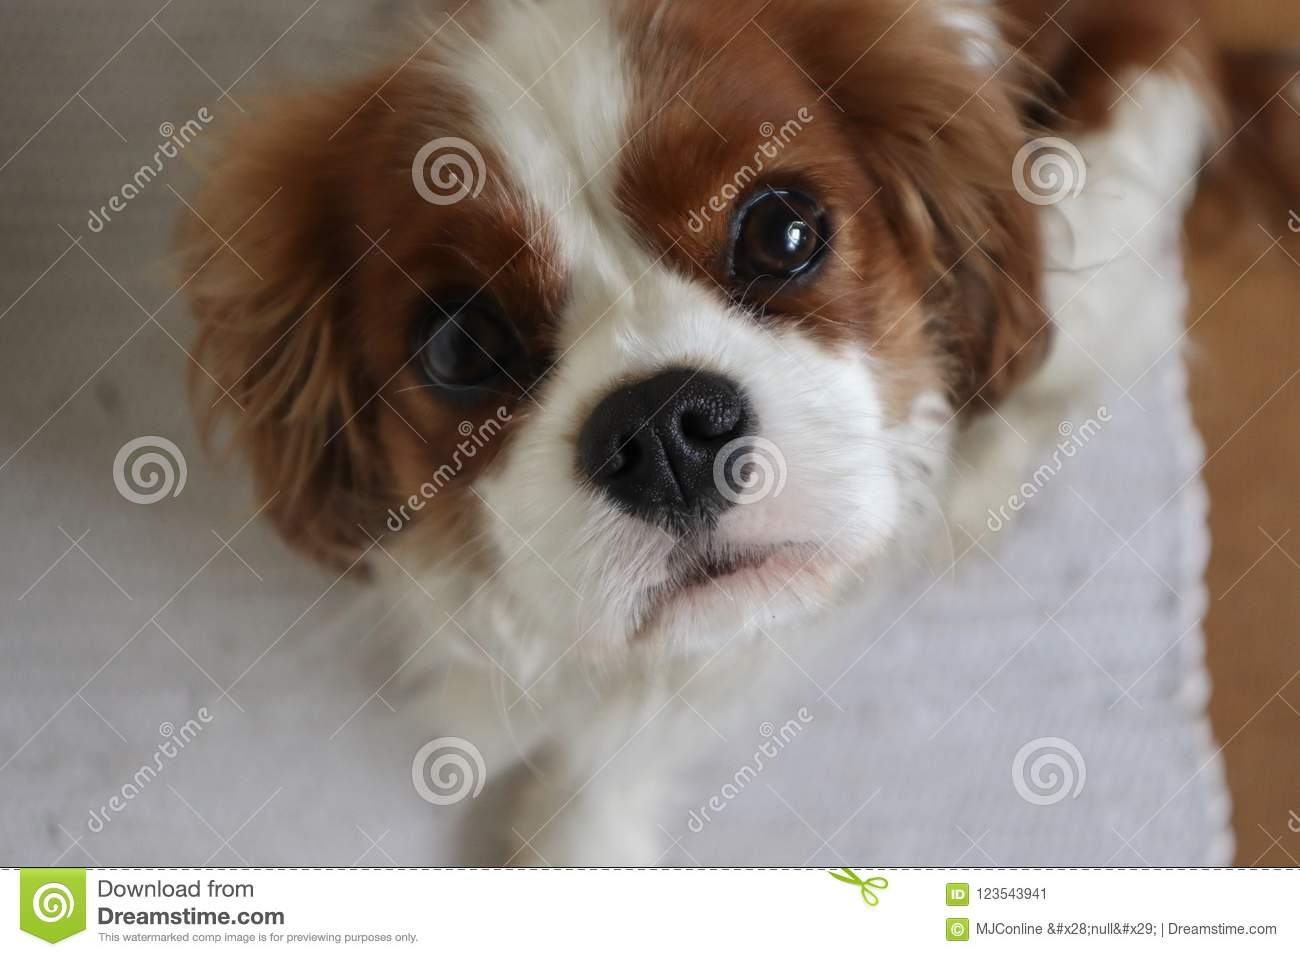 Cavalier King Charles Spaniel Puppy Looking Up Stock Image Image Of Spaniel Puppies 123543941